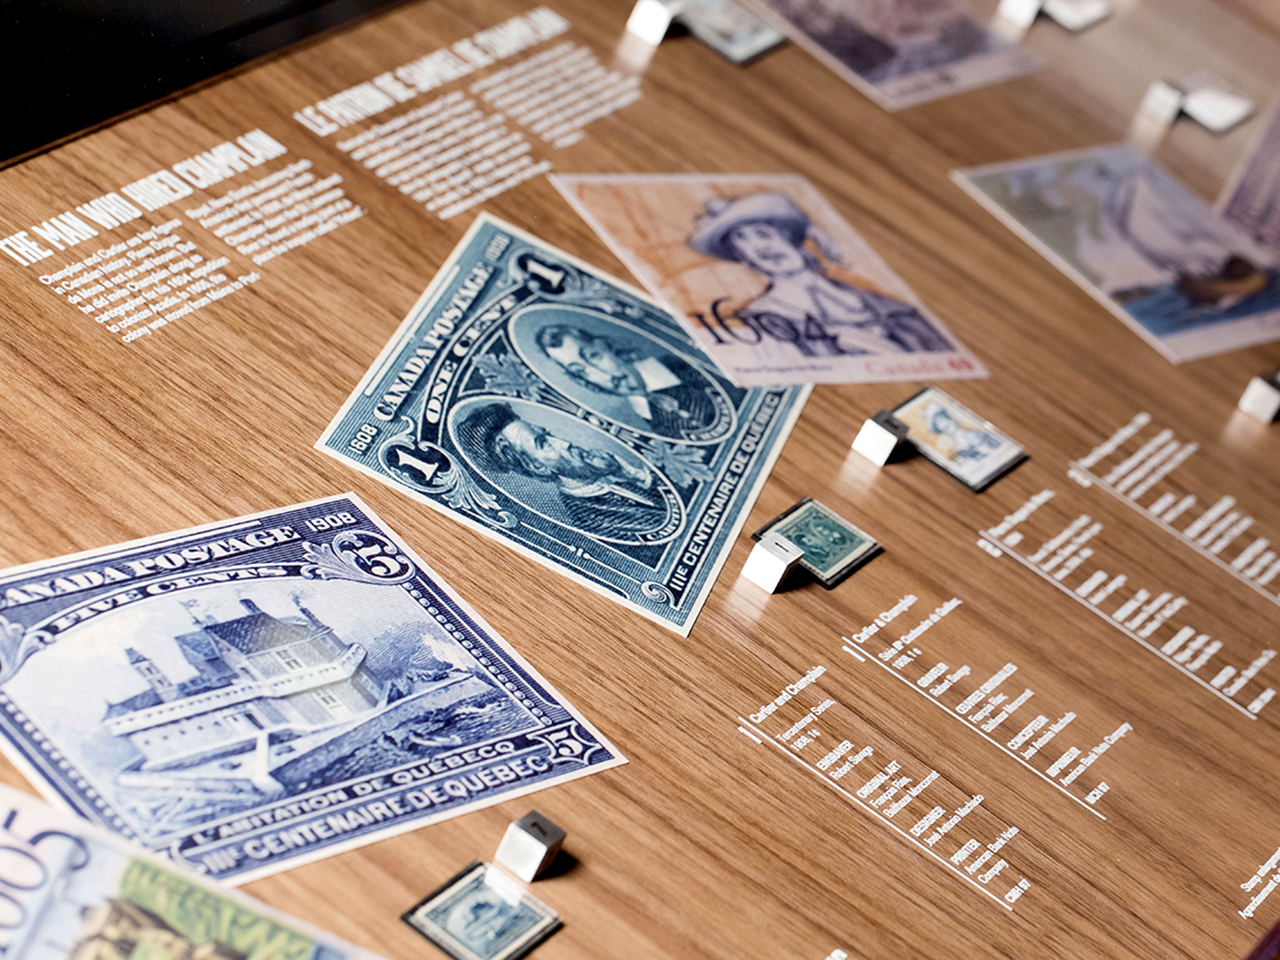 Stamps and images of stamps